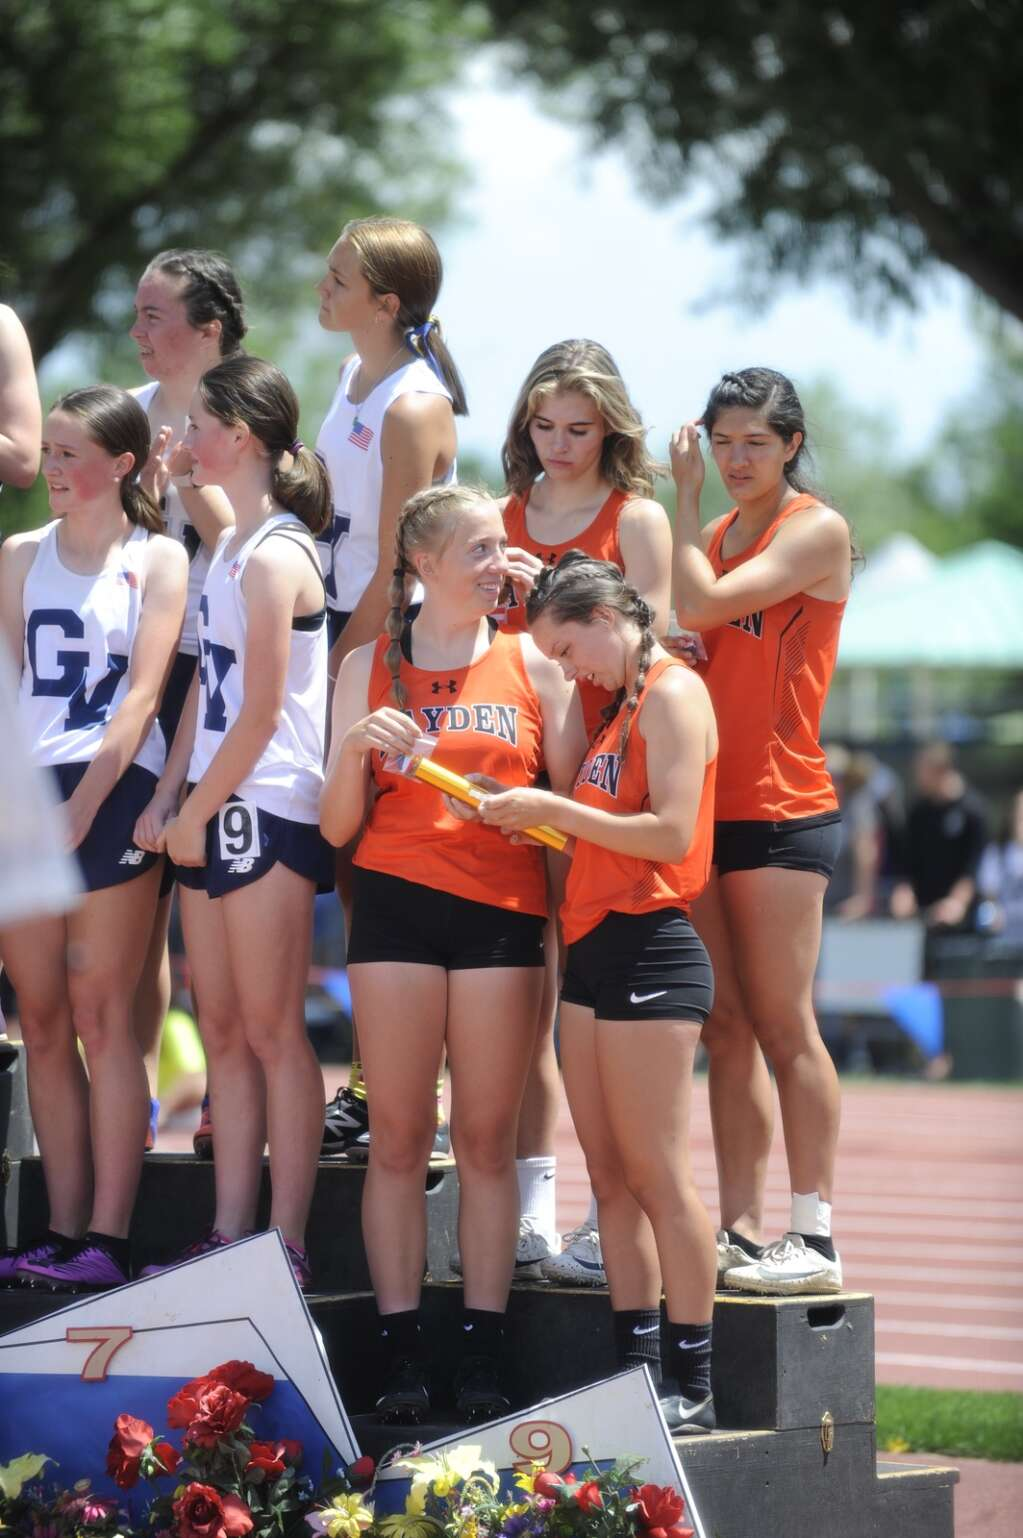 Hayden finished ninth in the 4x200 with the team of Jillian Bennett, Isabella Simones, Jenna Kleckler and Mia Mikos at the CHSAA Track and Field State Championships at JeffCo Stadium on Friday. (Photo by Shelby Reardon)